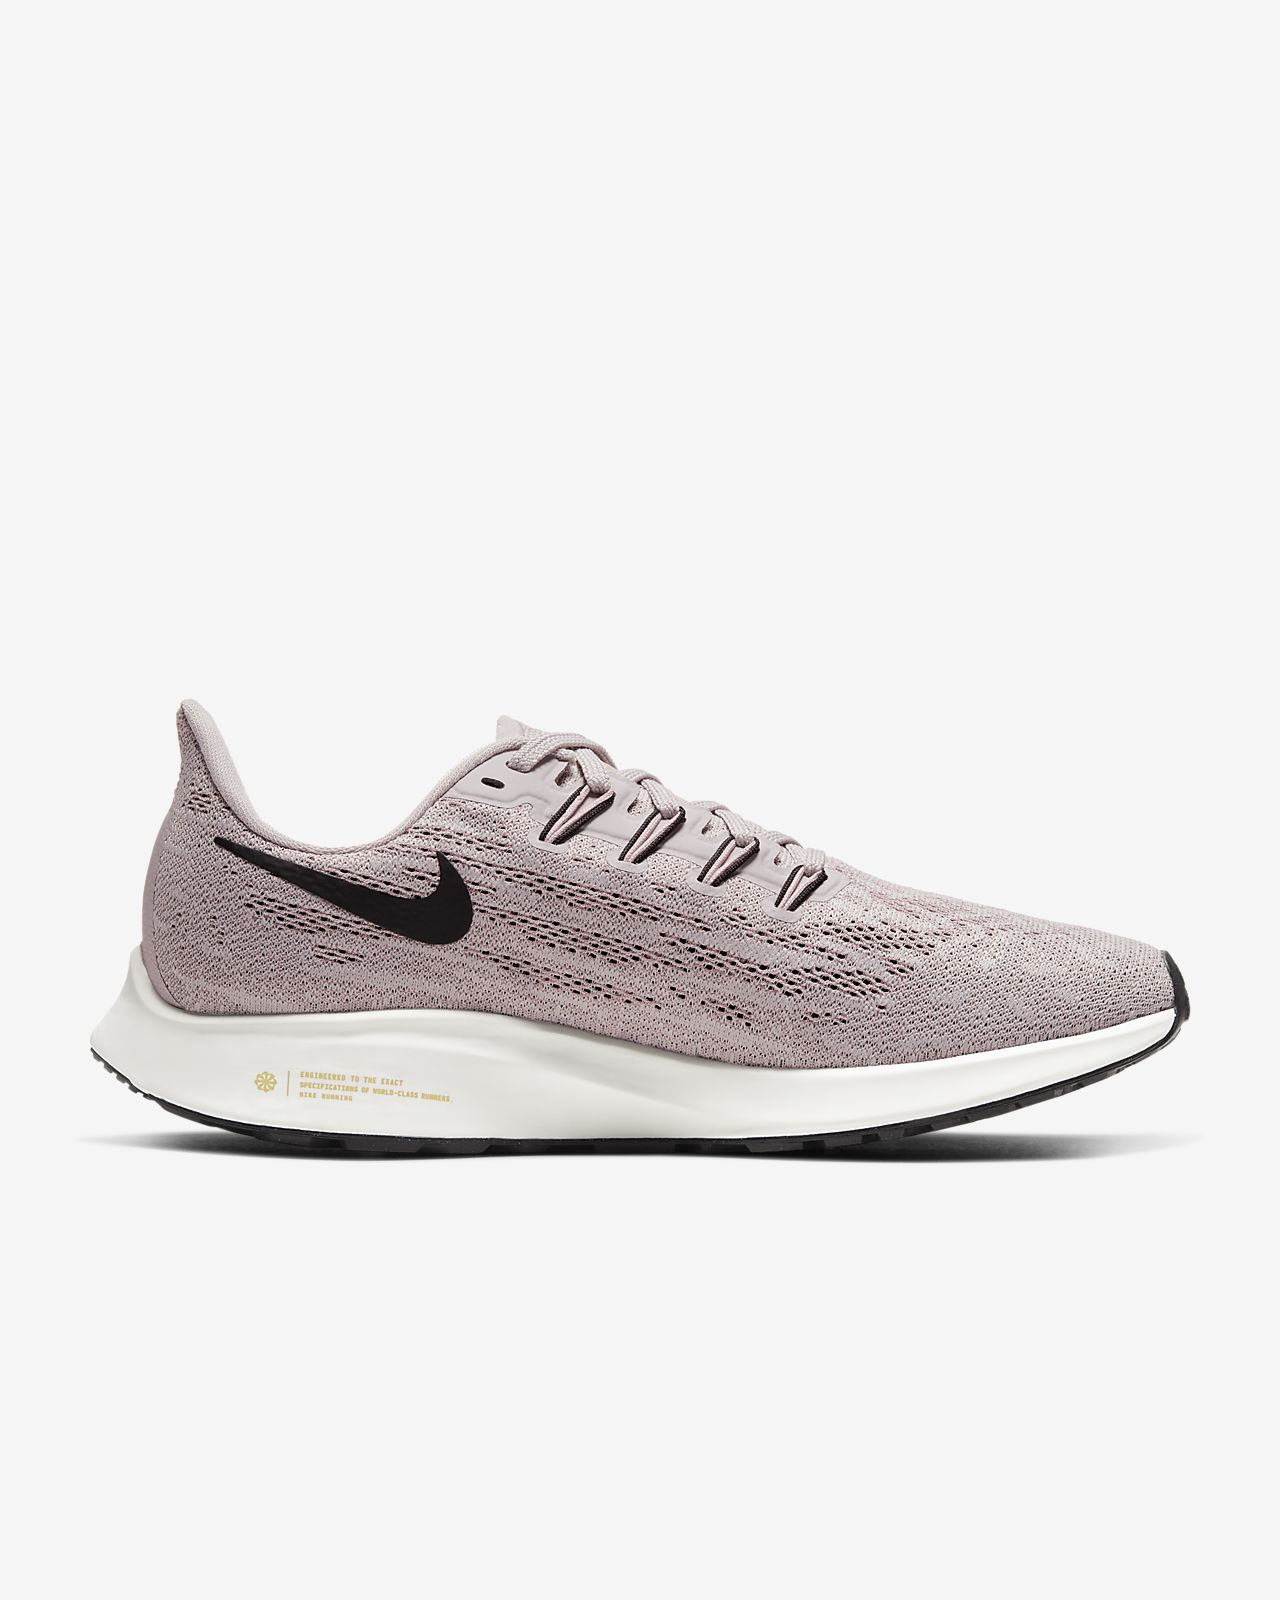 Nike Pegasus 28 In Women's Athletic Shoes for sale | eBay